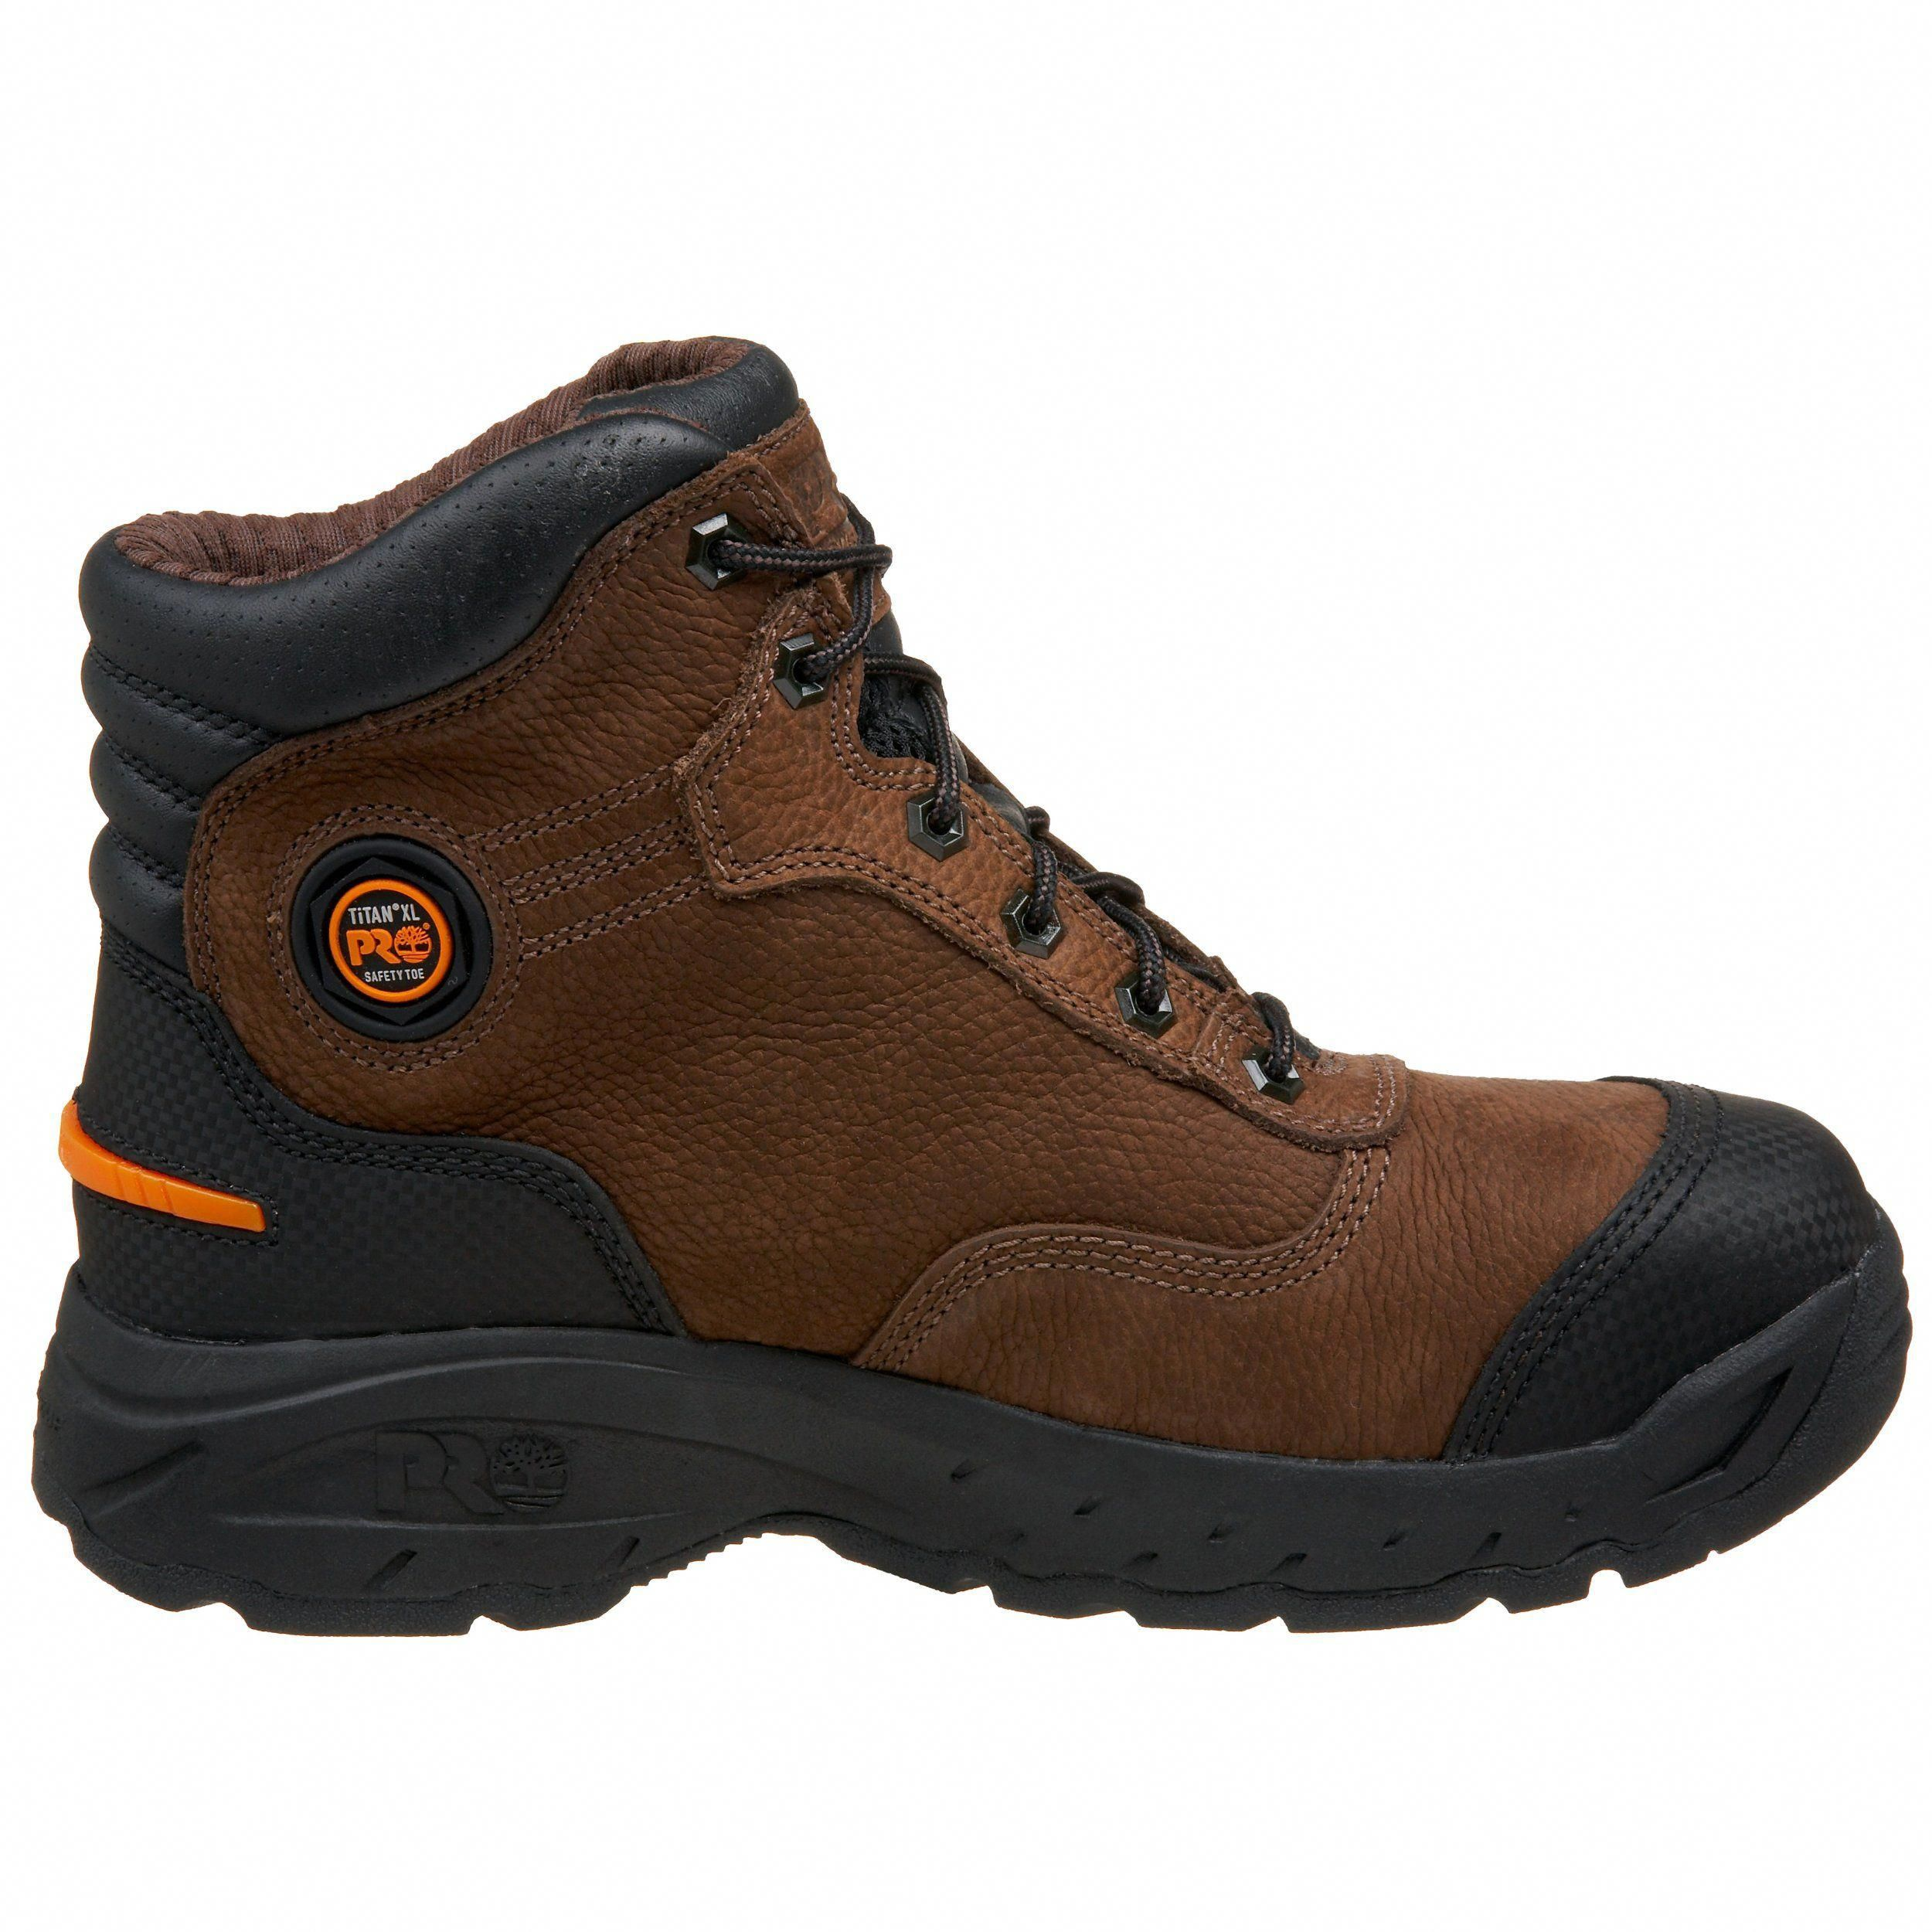 ef22cf2a932 Timberland PRO Endurance 6 External Met Guard Steel Toe Men's Work ...